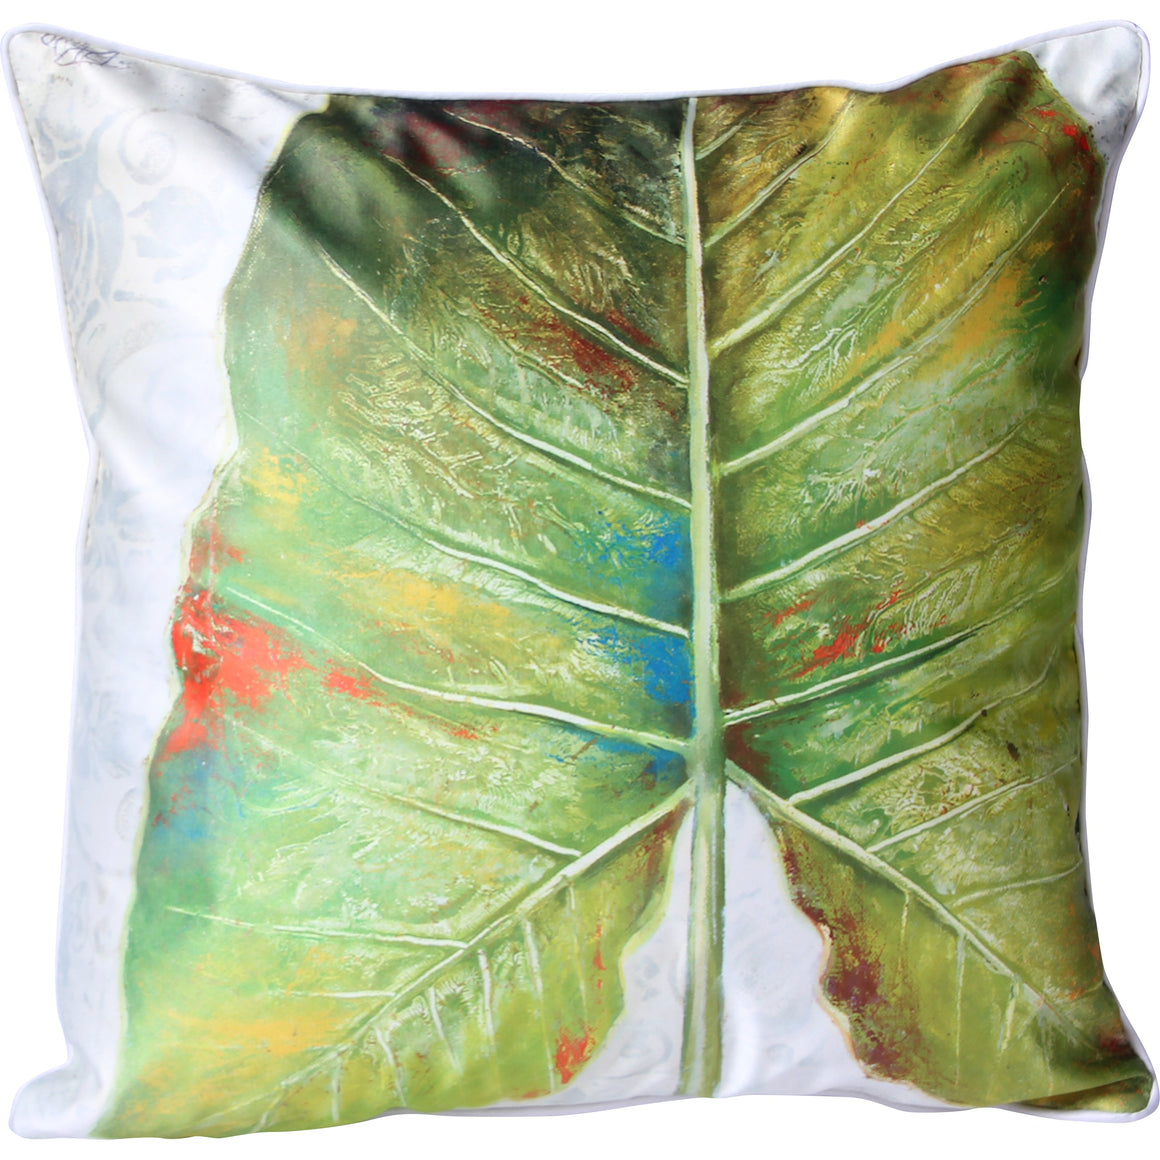 Botanical Flat Single Leaf Cushion